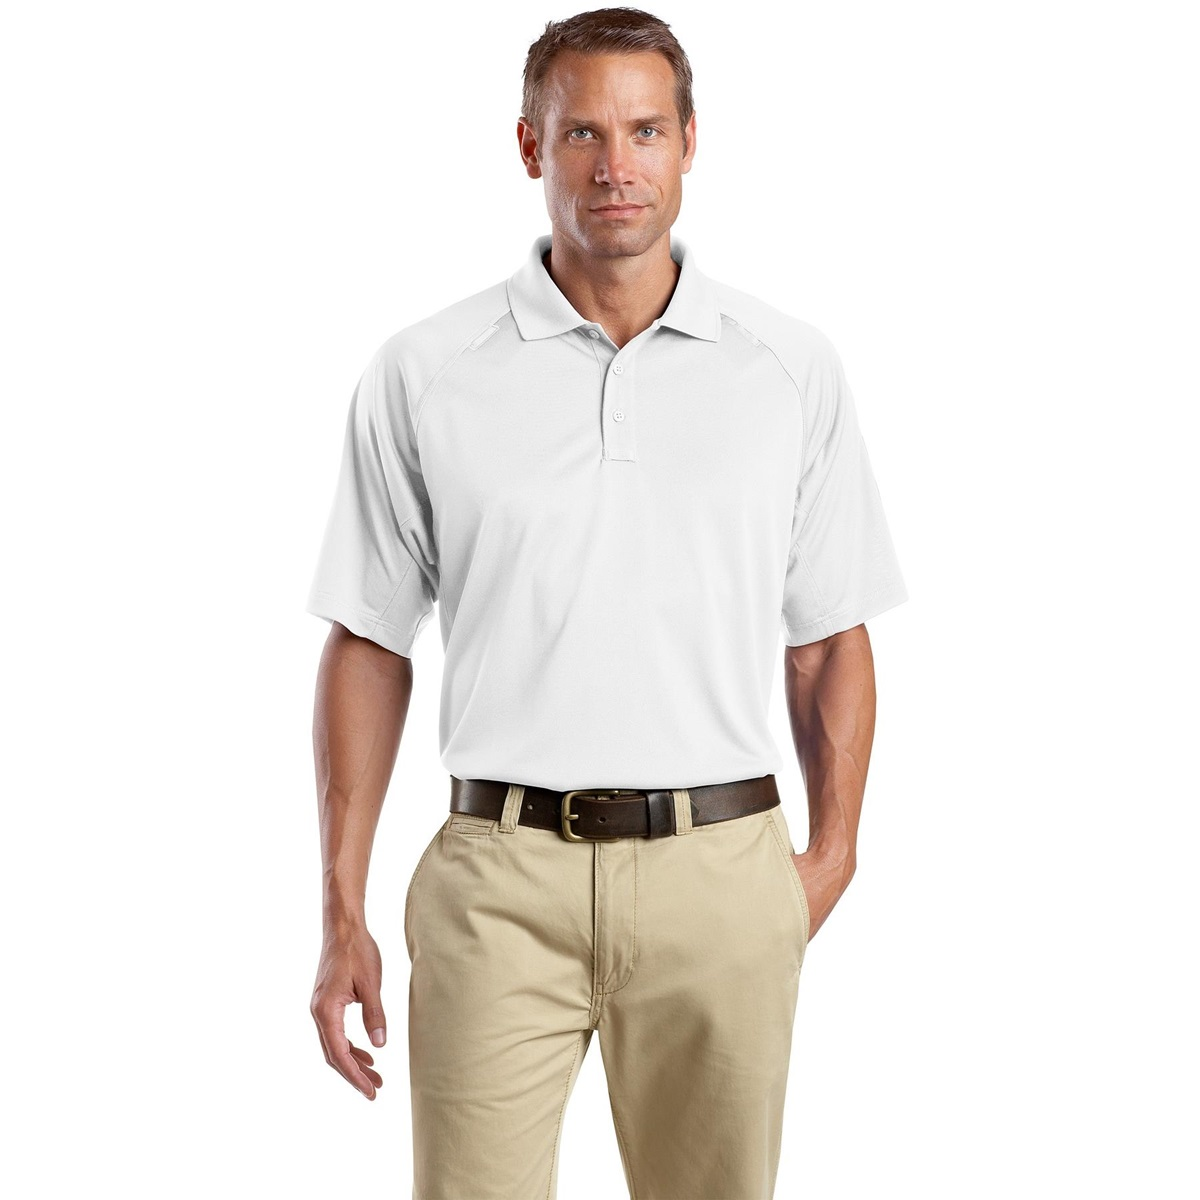 Cornerstone Cs410 Select Snag Proof Tactical Polo White